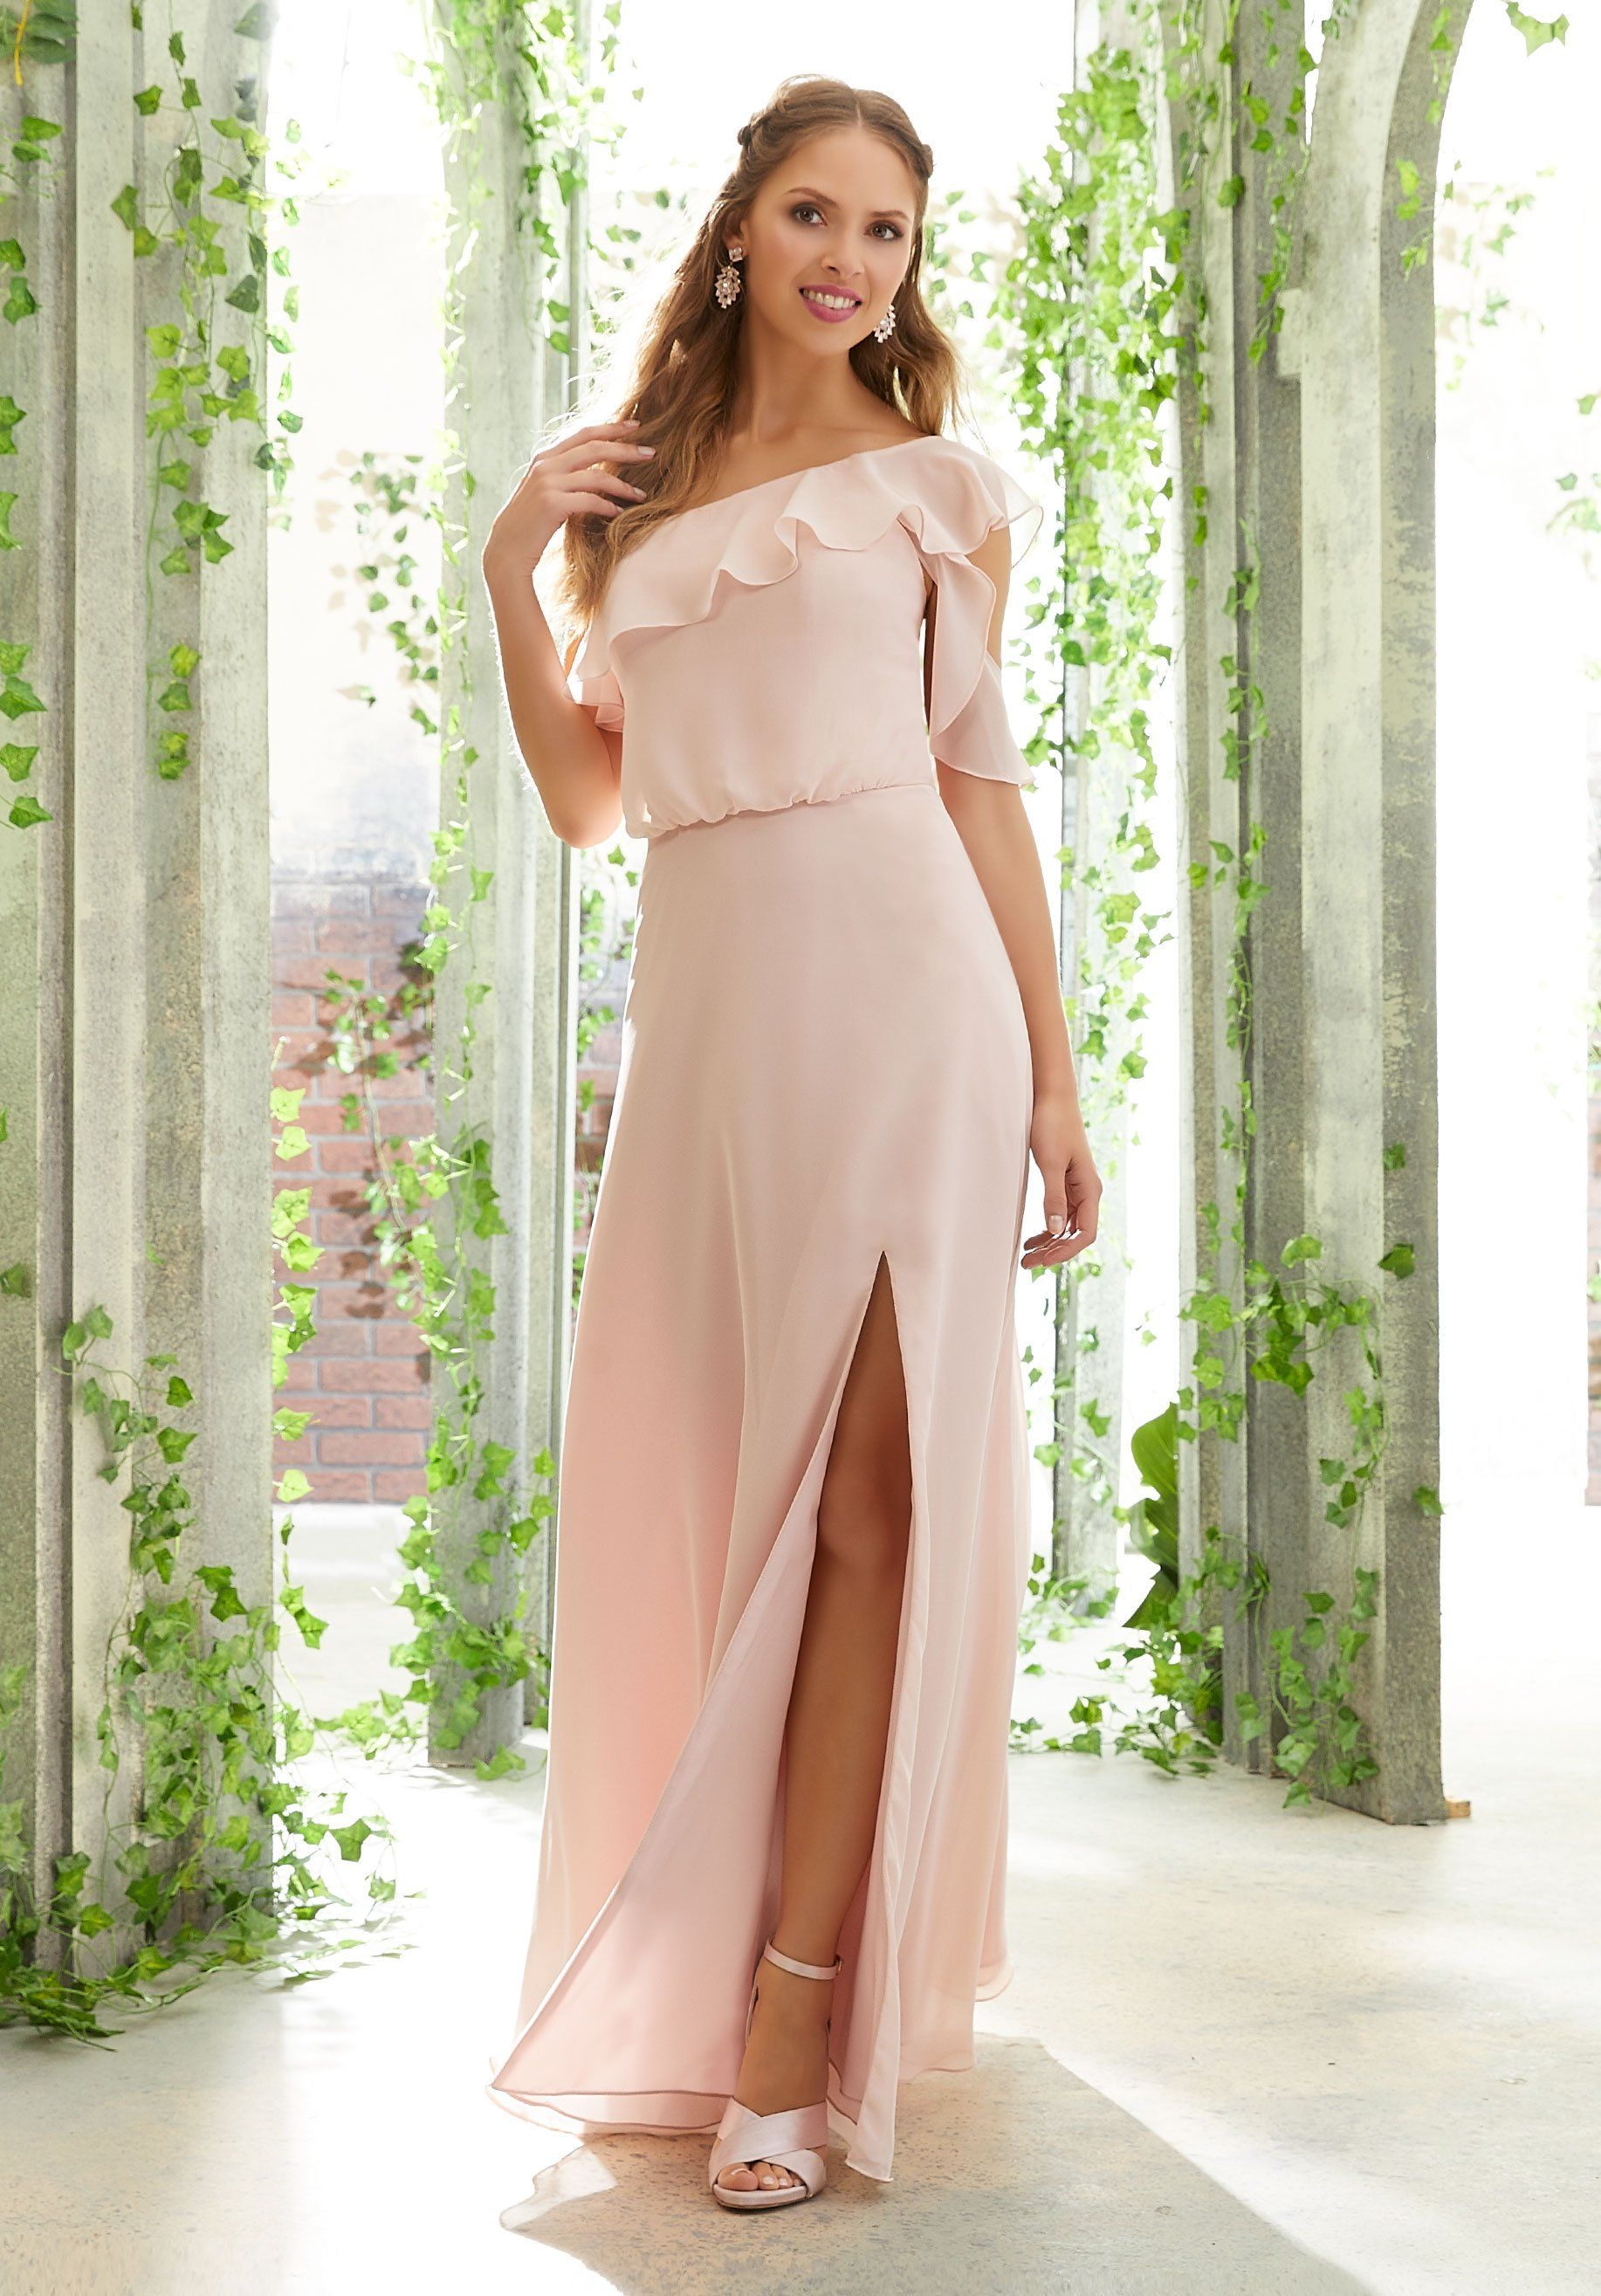 515407b8f6d Morilee Bridesmaids 21603 One Shoulder Chiffon with Side Slit Bridesma –  Off White